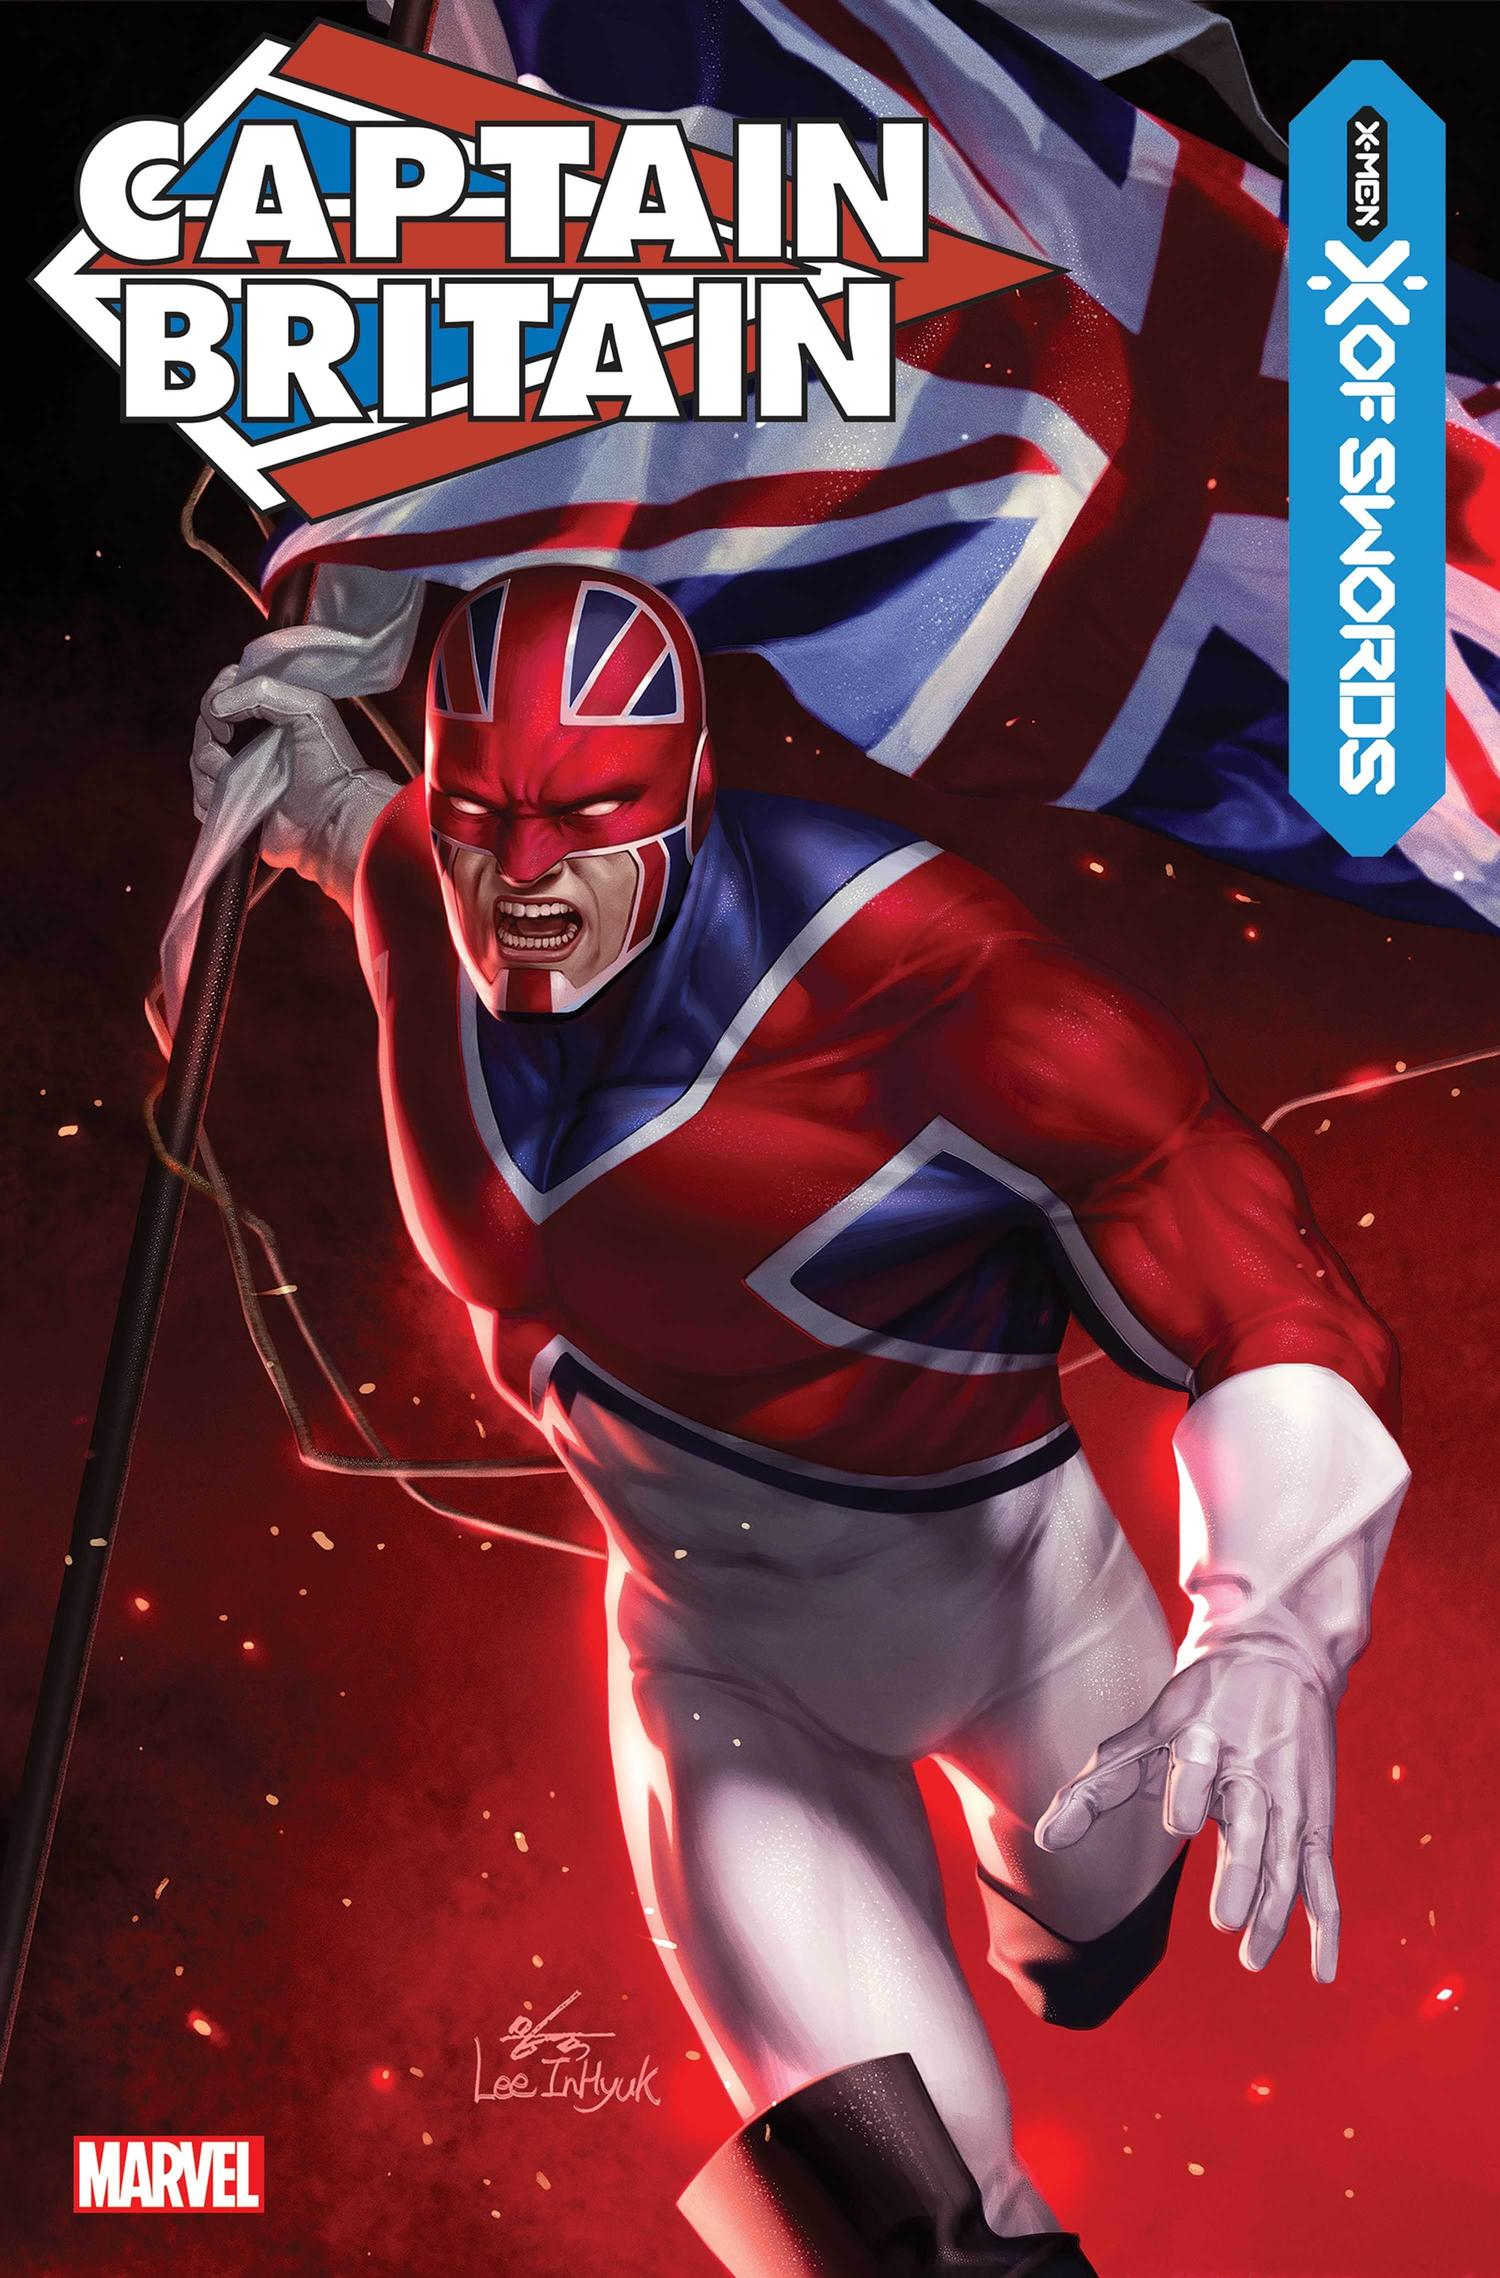 CAPTAIN BRITAIN: MARVEL TALES #1WRITTEN BY CHRIS CLAREMONT;ART BY HERB TRIMPE, JOHN BYRNE & ALAN DAVIS;COVER BY INHYUK LEE